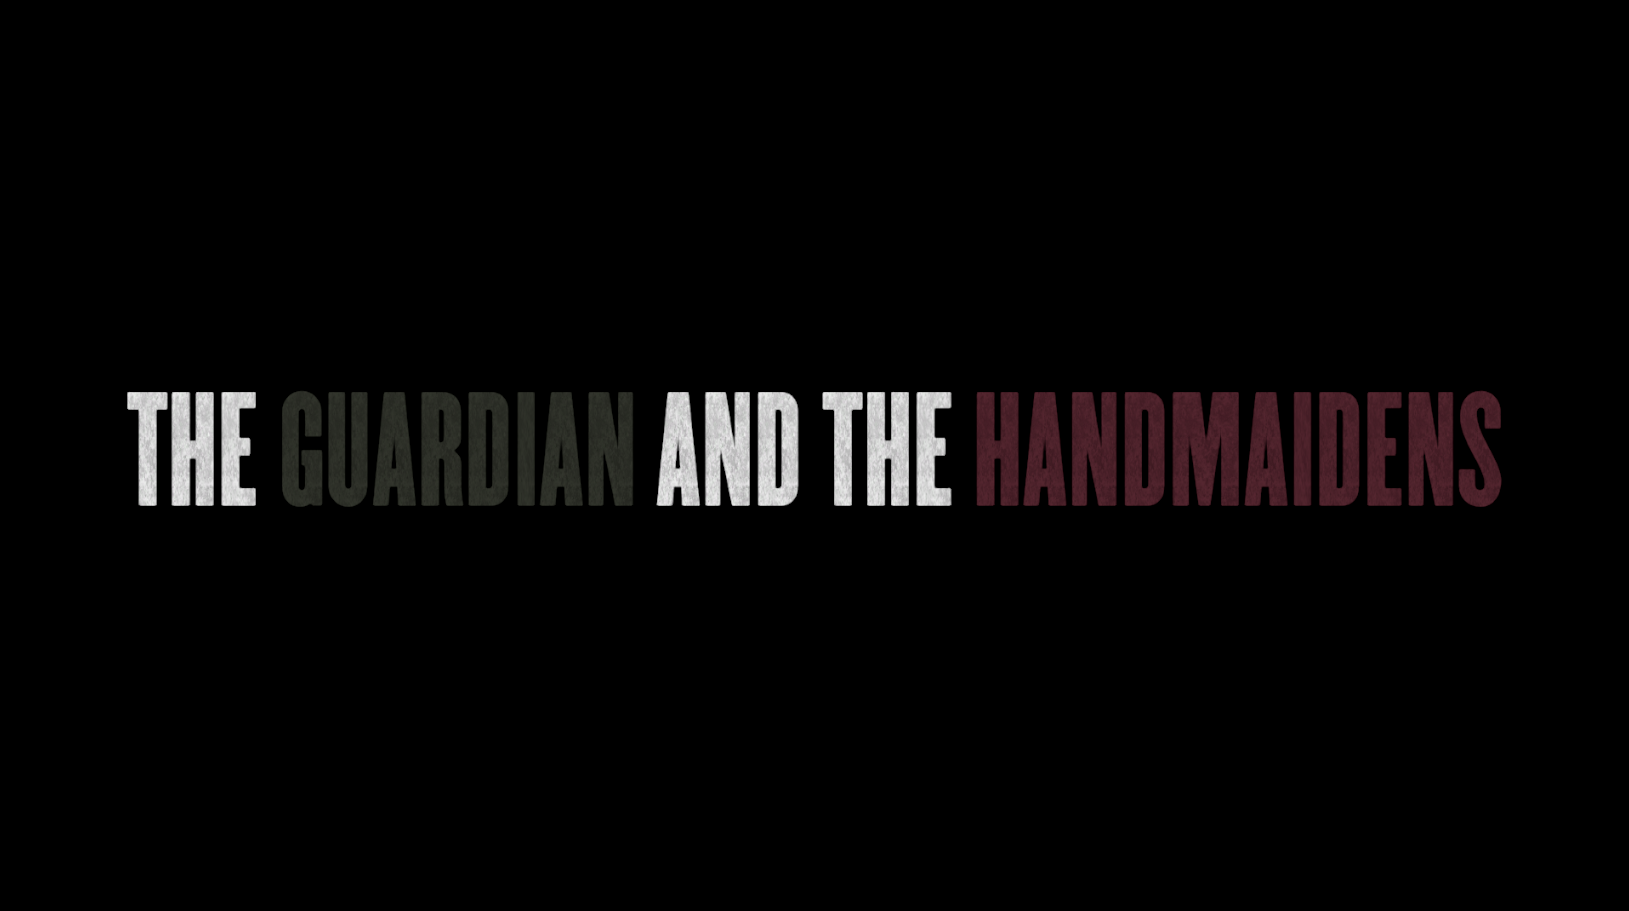 The Guardian and the Handmaidens